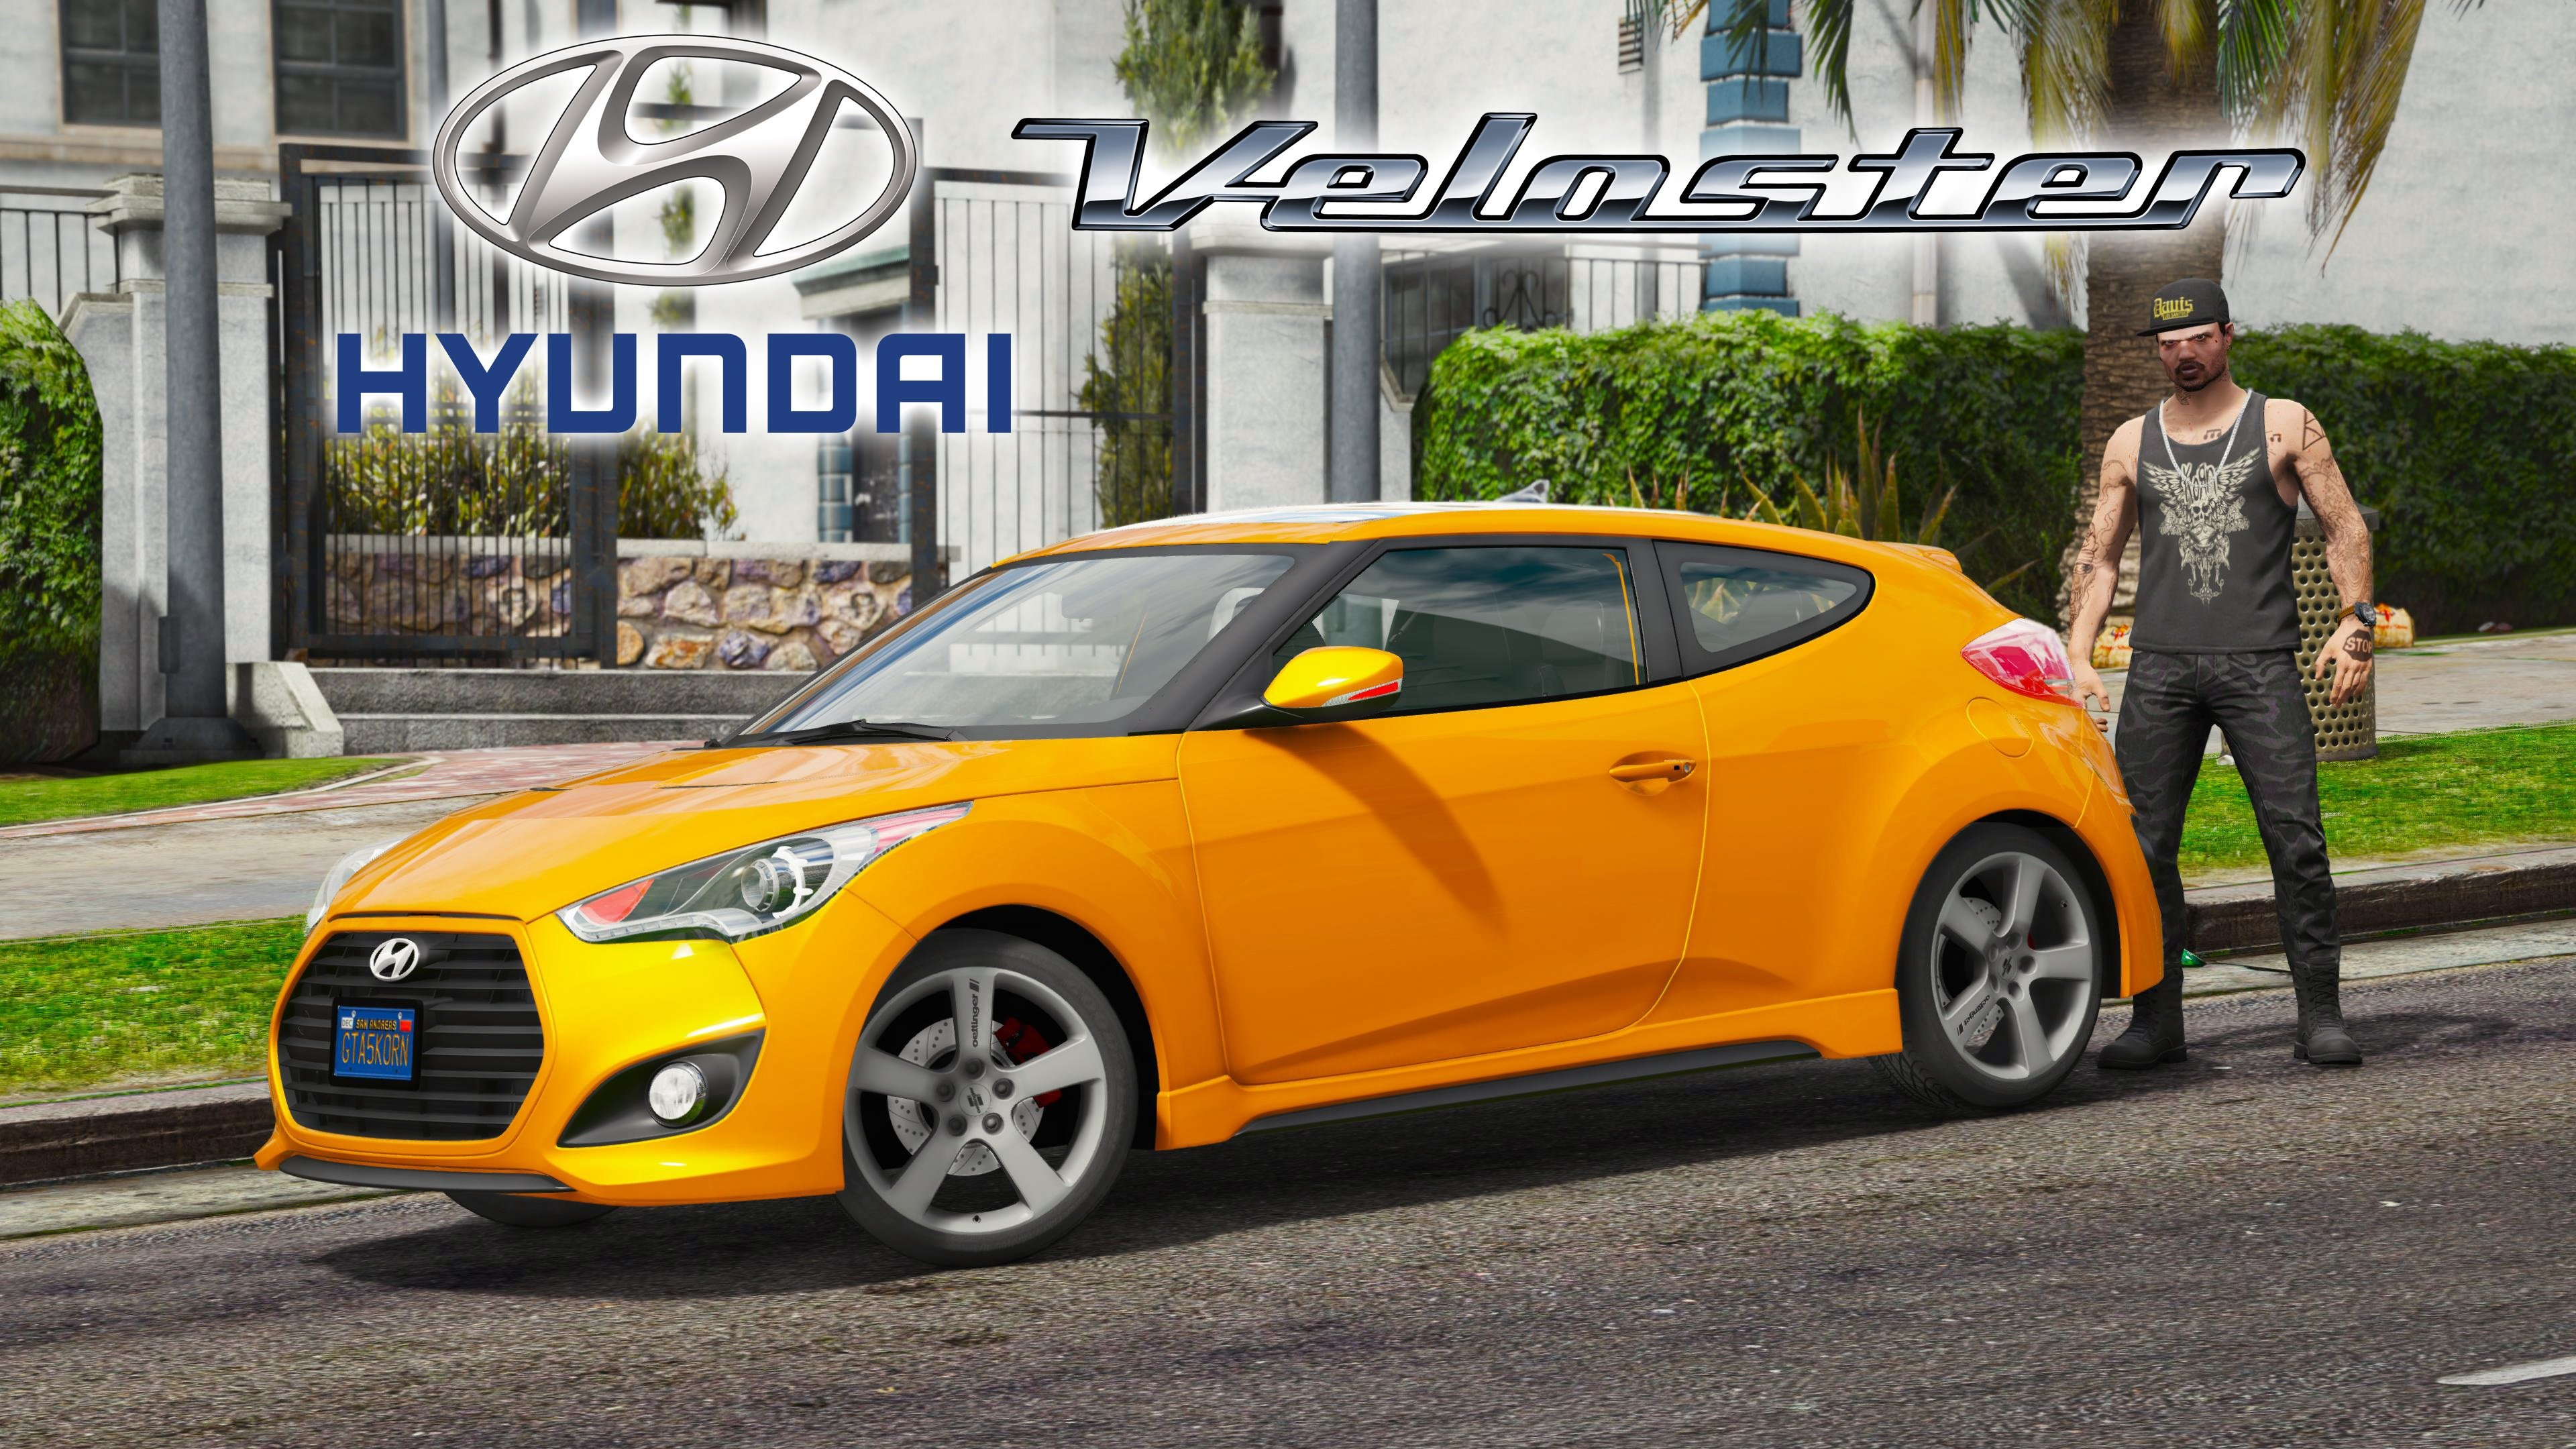 hyundai weili related start turbo network images veloster for sale automotive